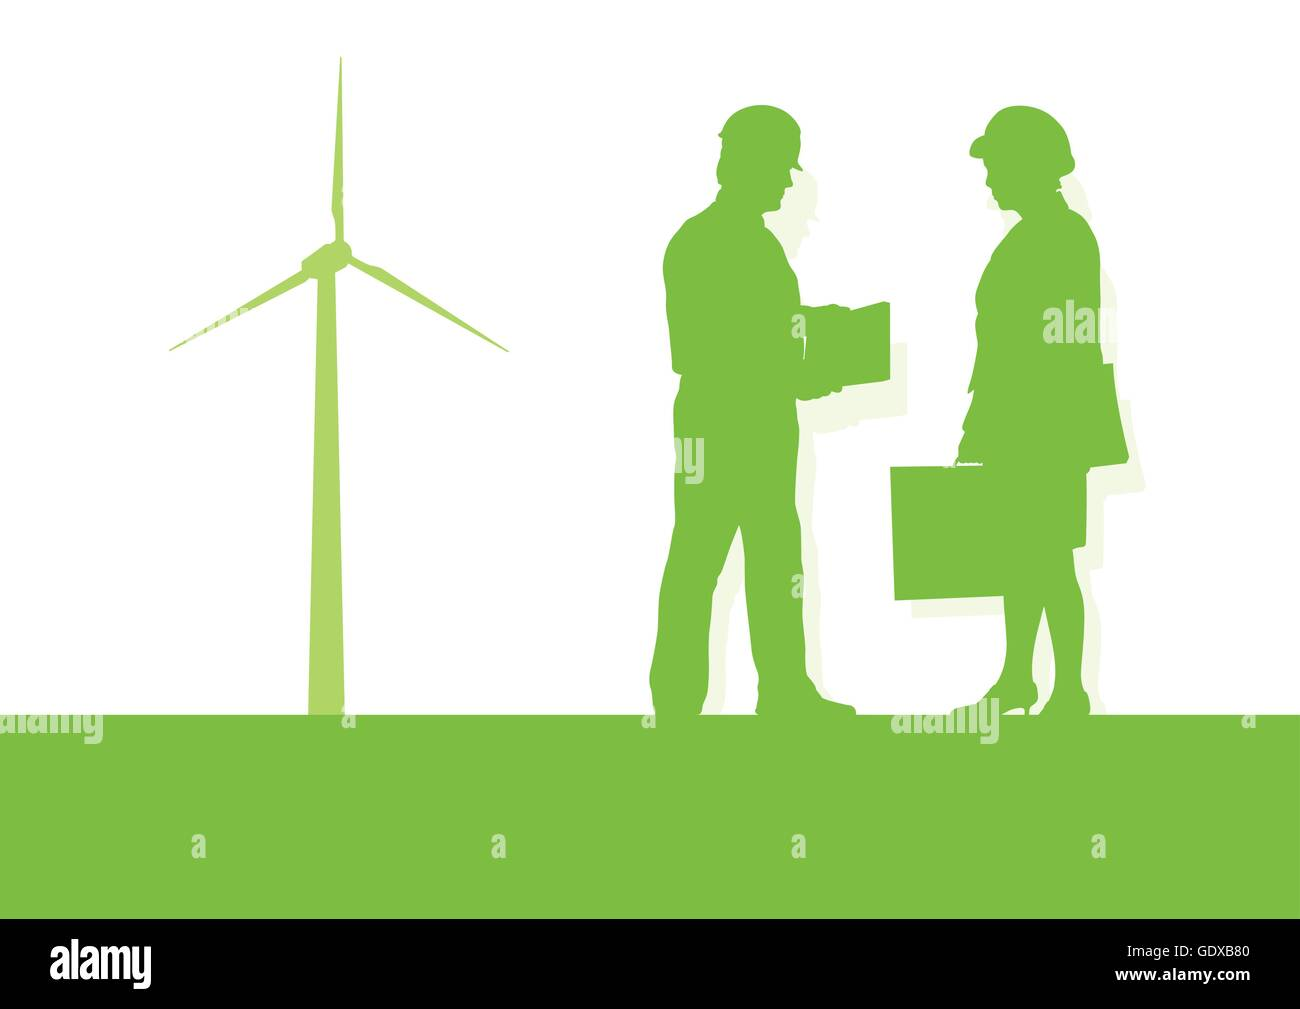 Energy Consulting Stock Photos Images Alamy Wind Turbine Electrical Diagram Engineer Technician Green Power Generator Station Background Vector Concept Image